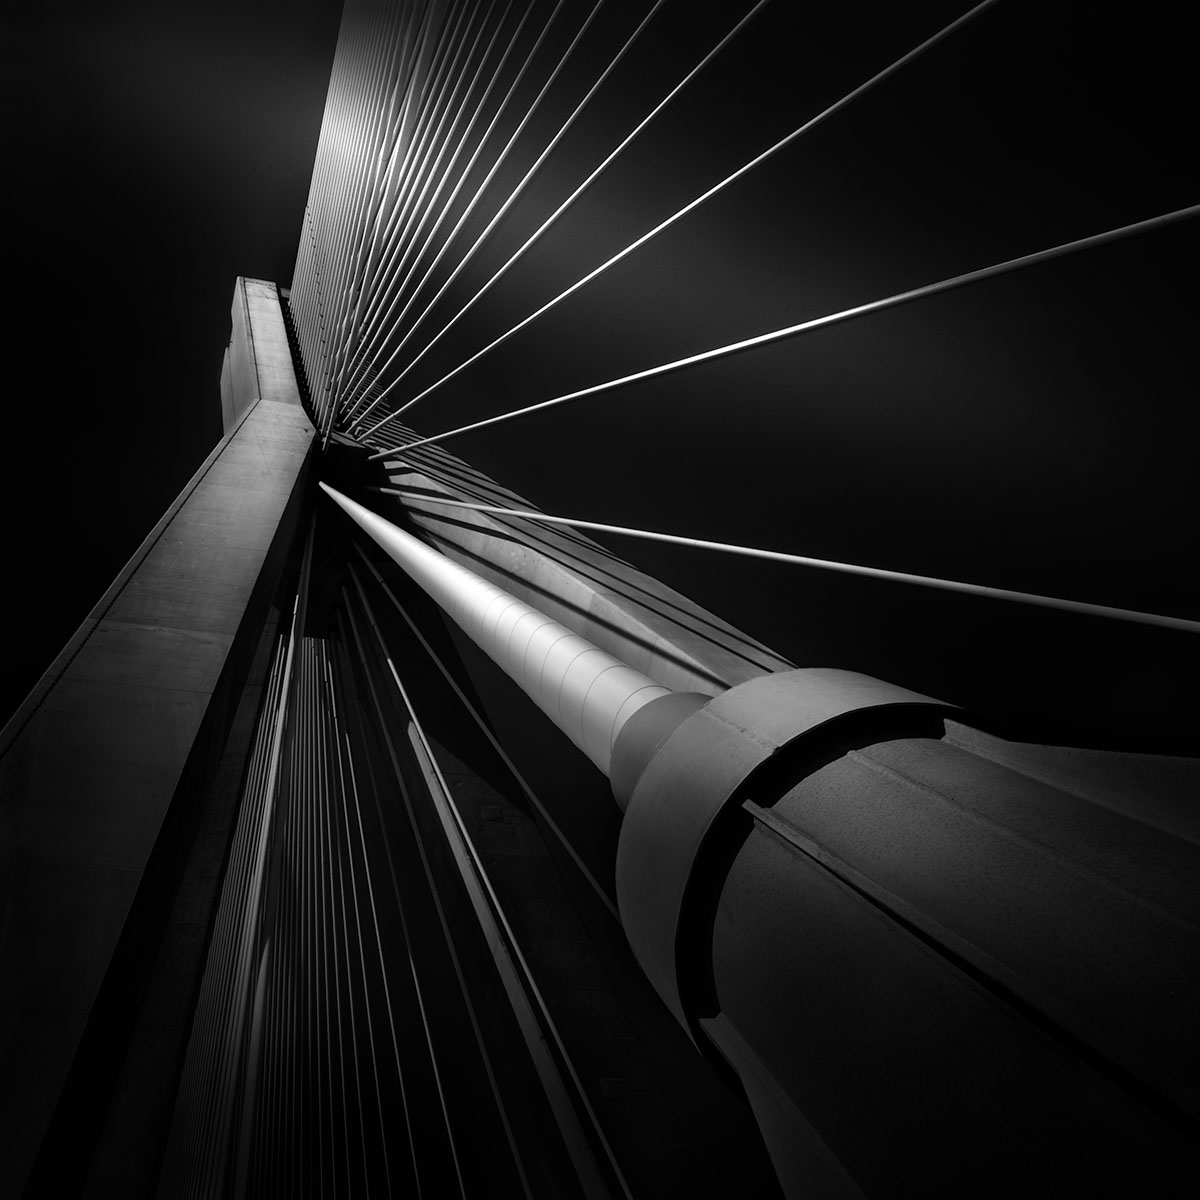 Exuberance I - Rio Antirrio Bridge Patras © Julia Anna Gospodarou - Award-Winning Architectural Photography